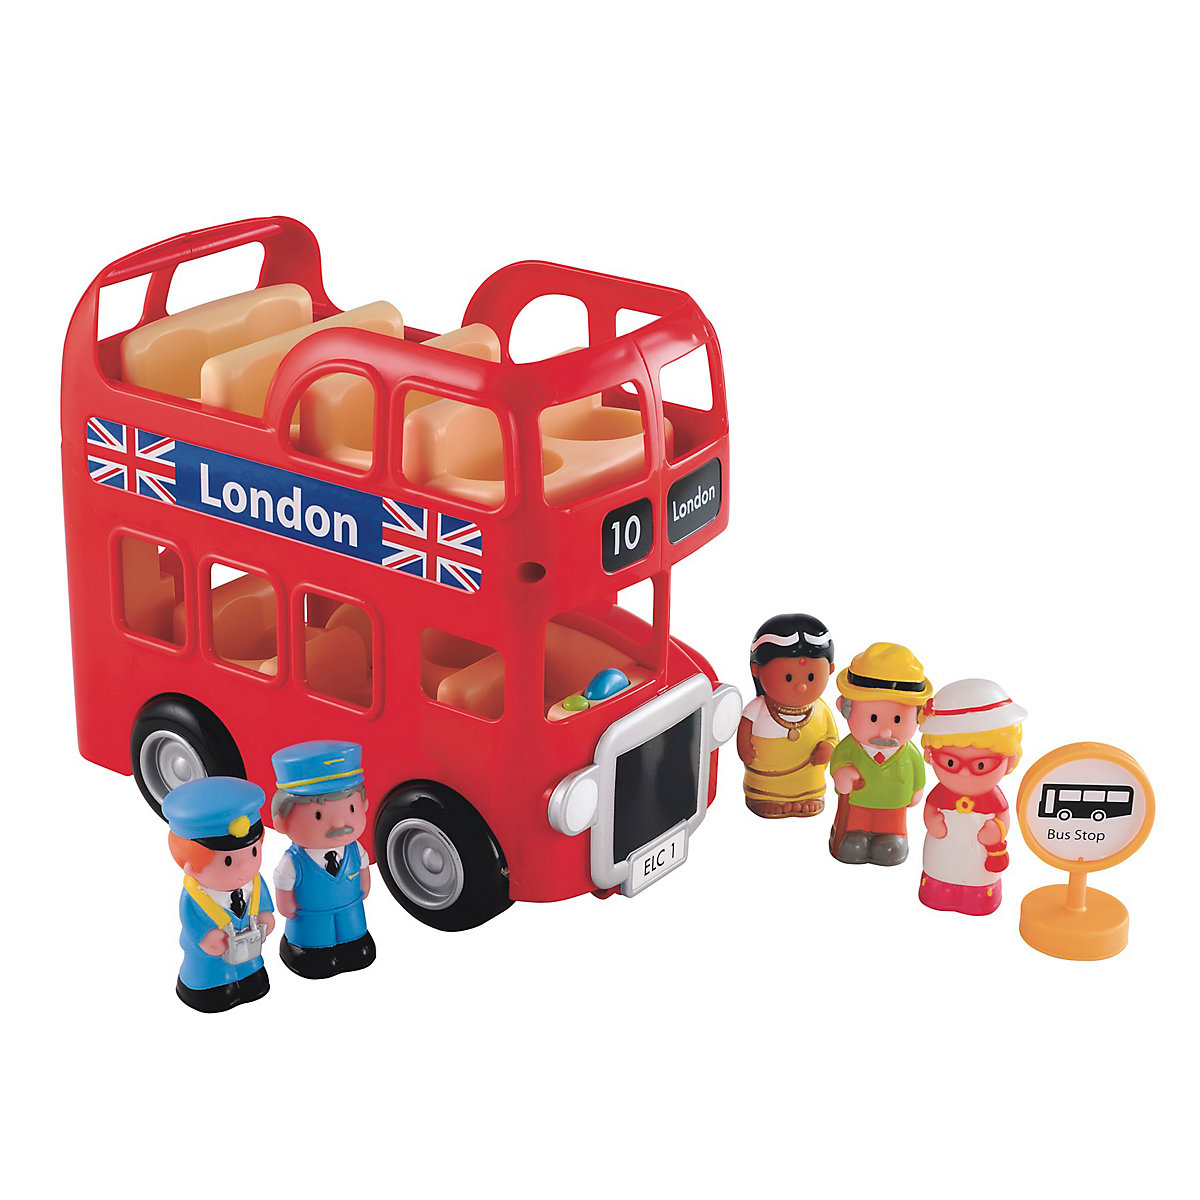 New HappyLand Boys and Girls London Bus Set Toy From 18 months - Toddler Gifts